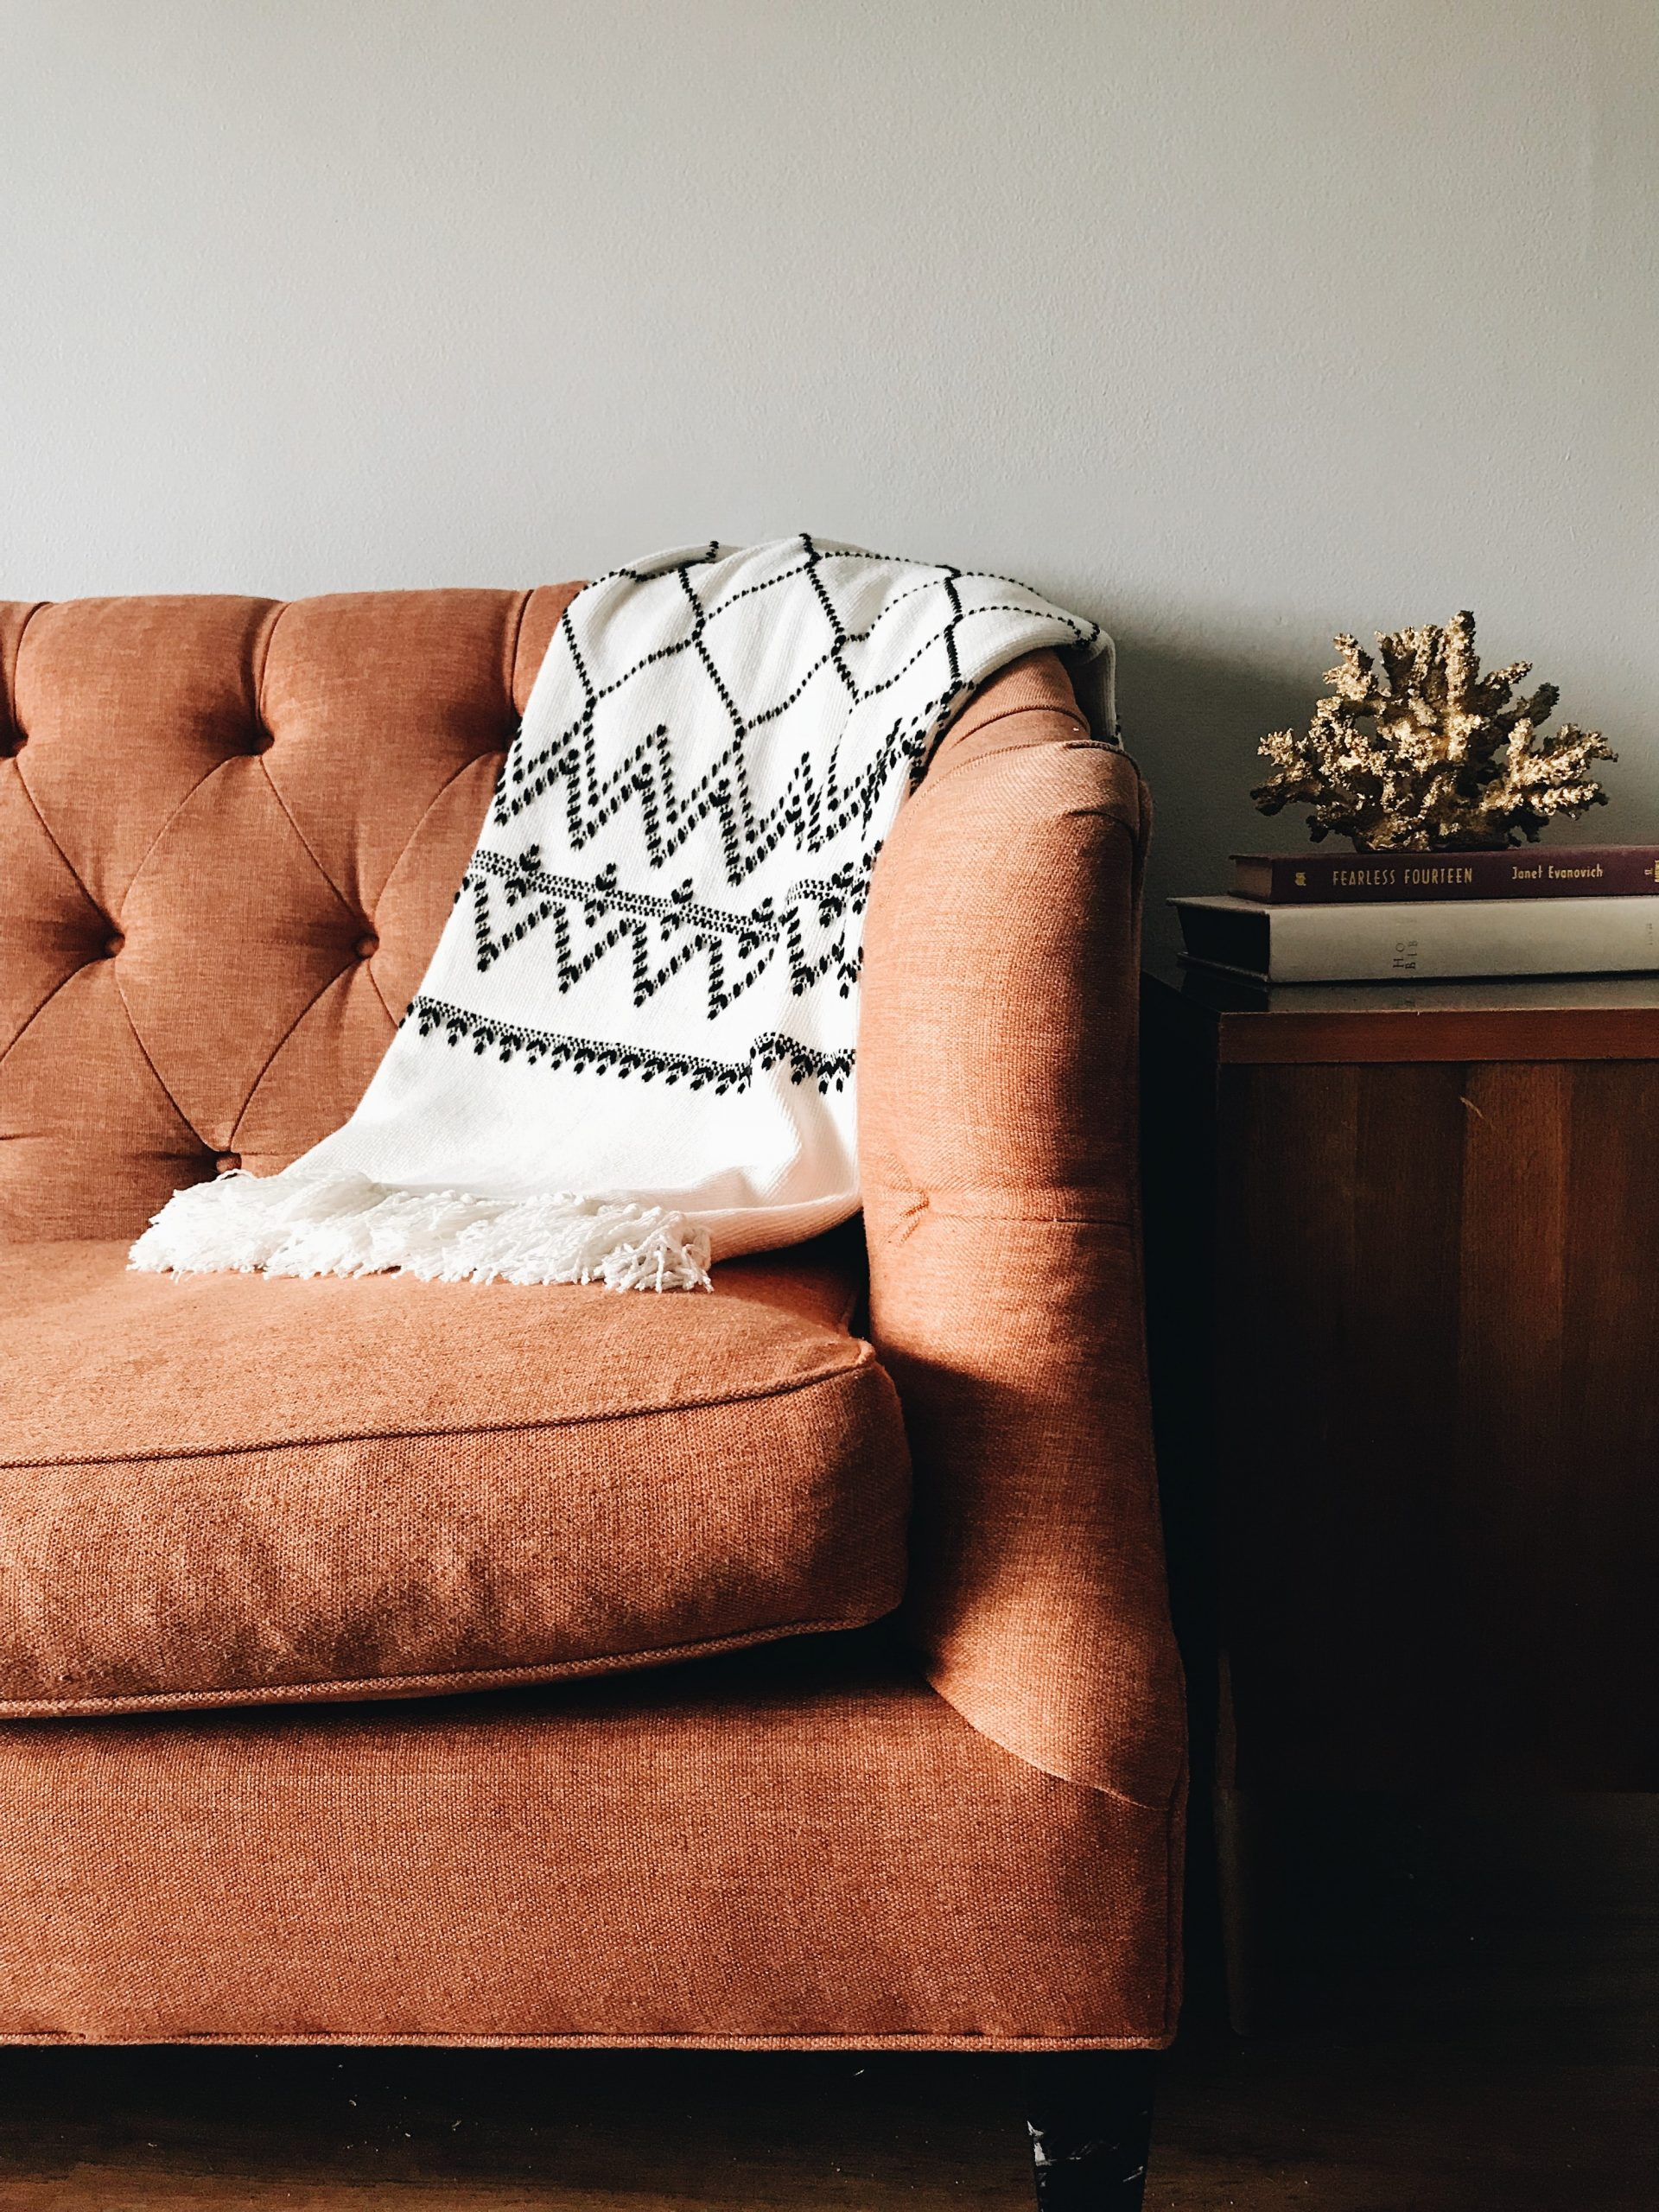 cozy sofa with throw blanket